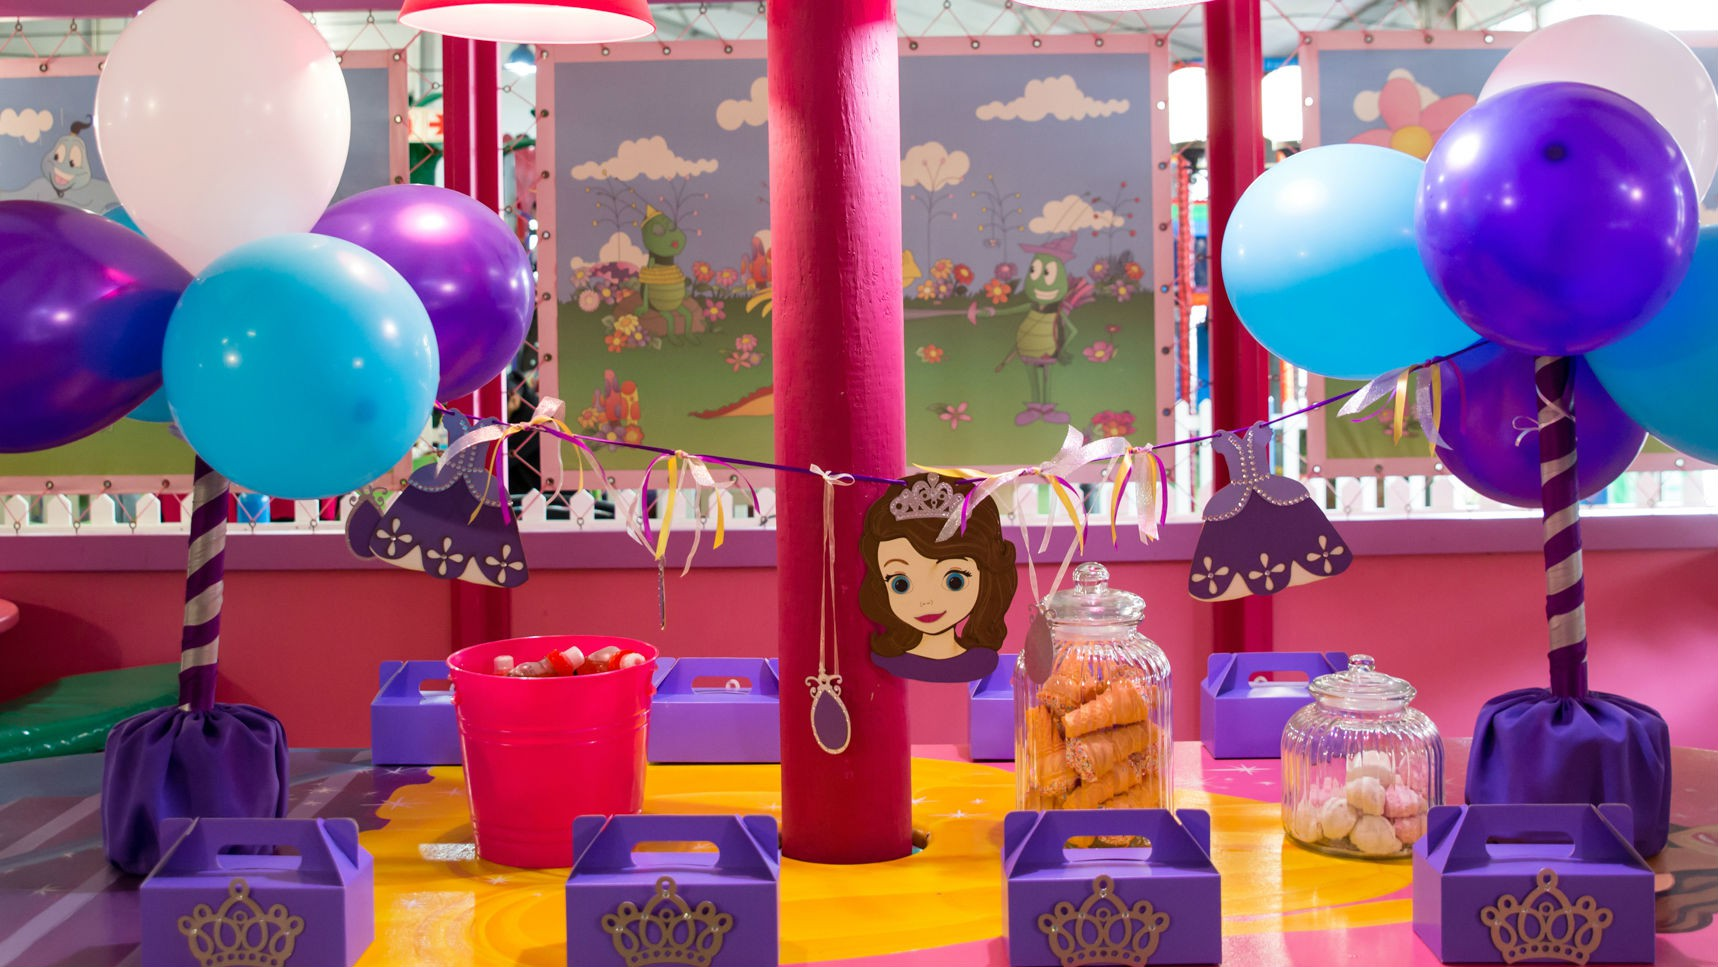 Sofia the First party setup